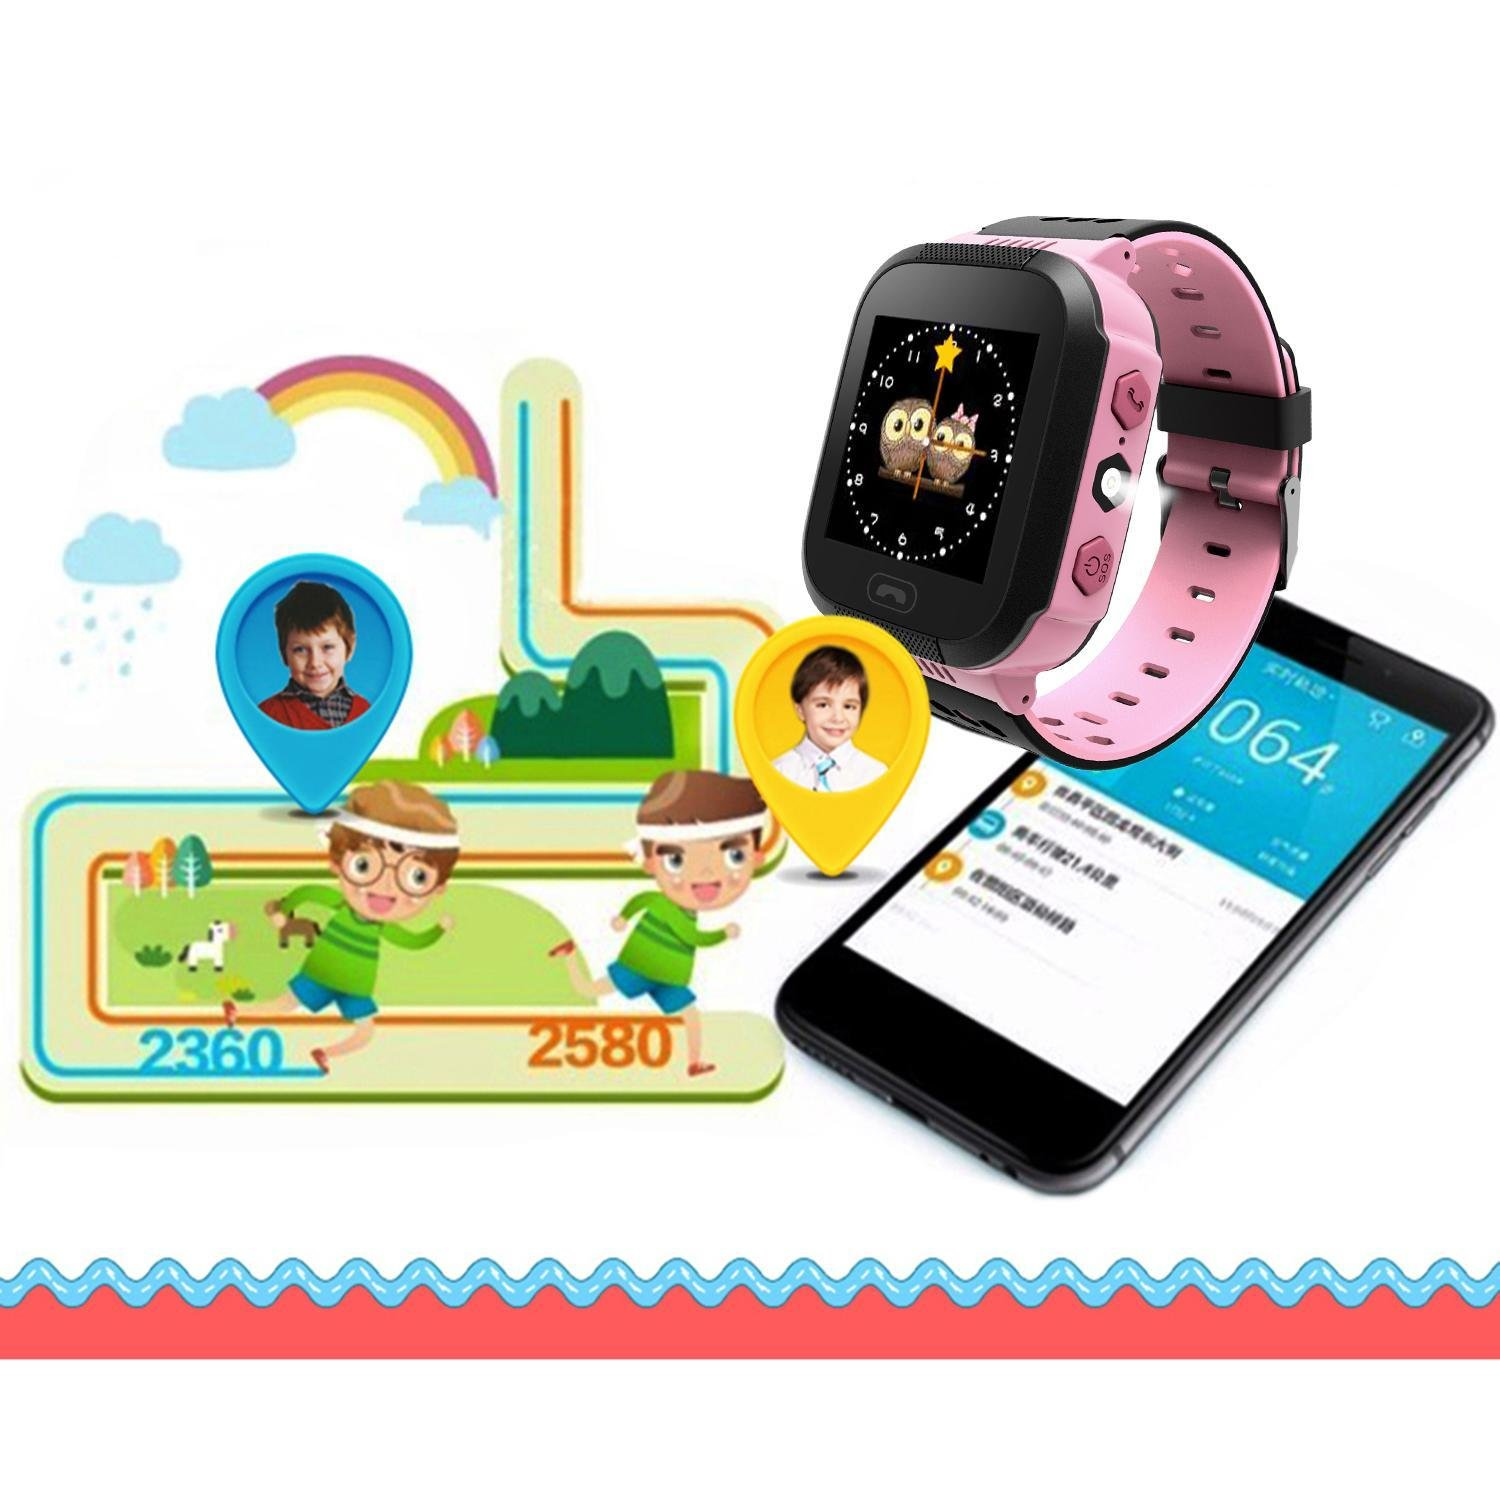 Goodfans GPRS Position Smart Watch,Children Boys and Girls Base Station Positioning Wrist GM8 Smart Watch Gift